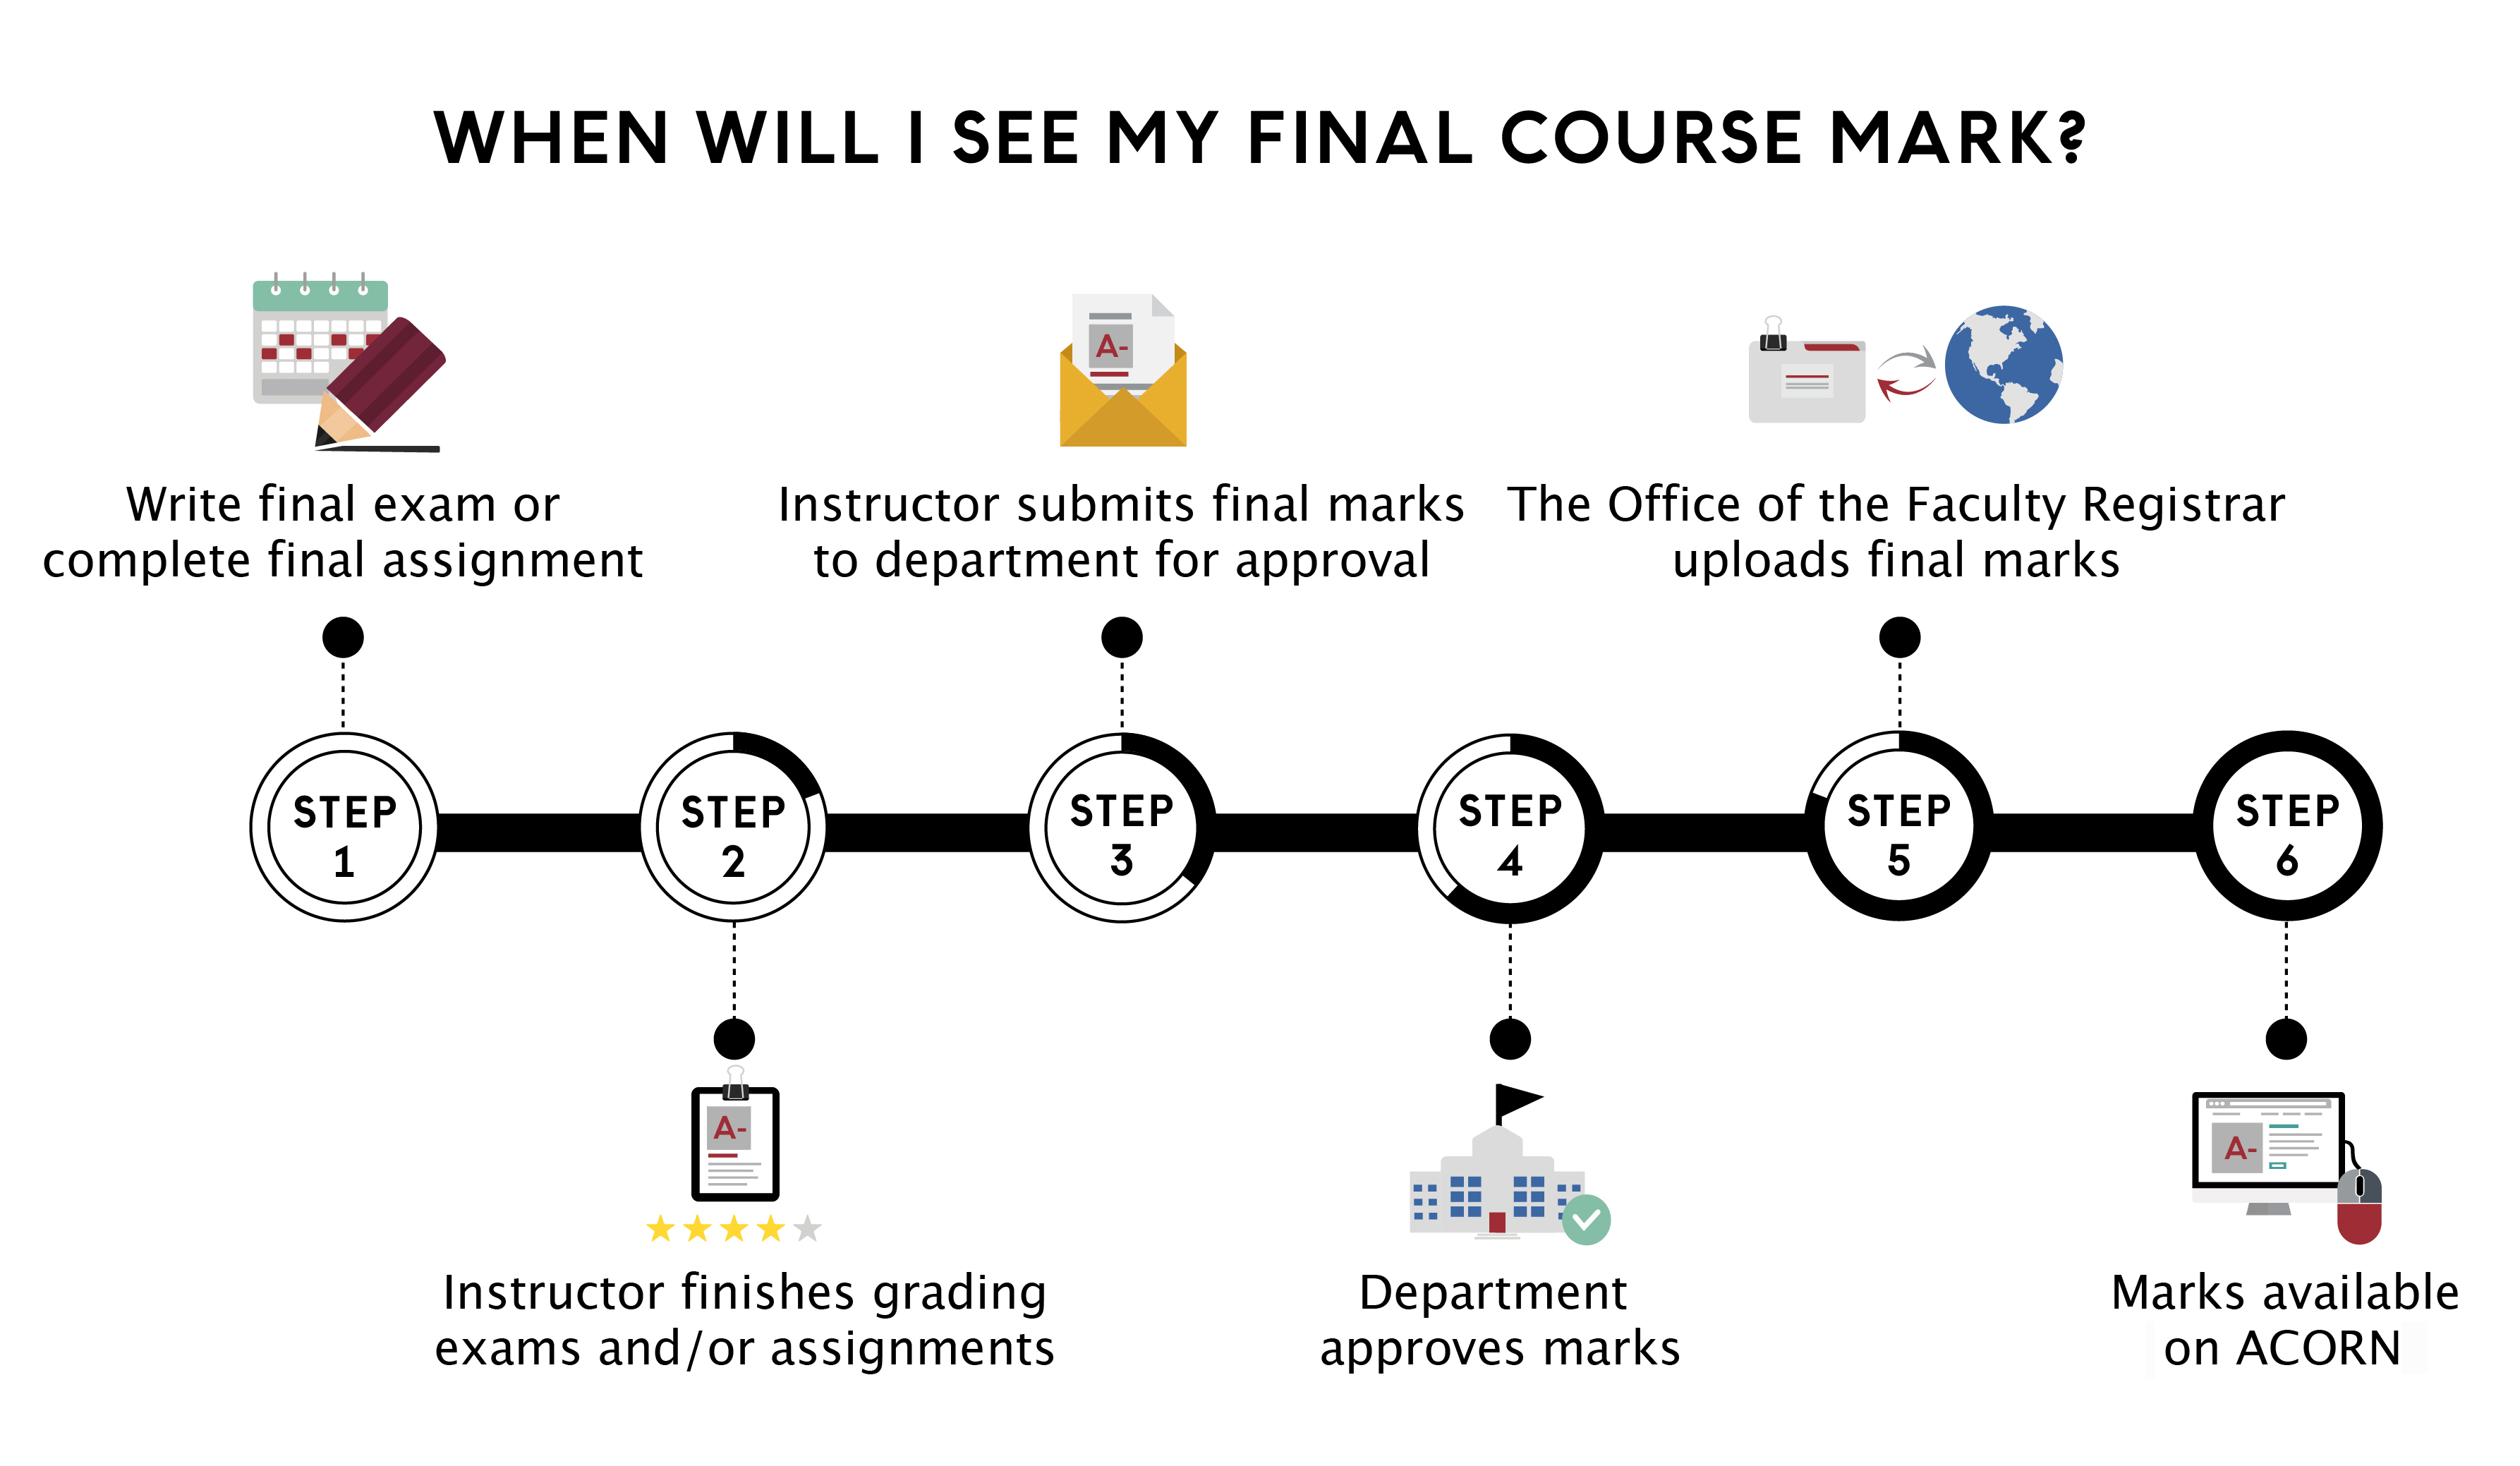 Illustration of final course mark timeline